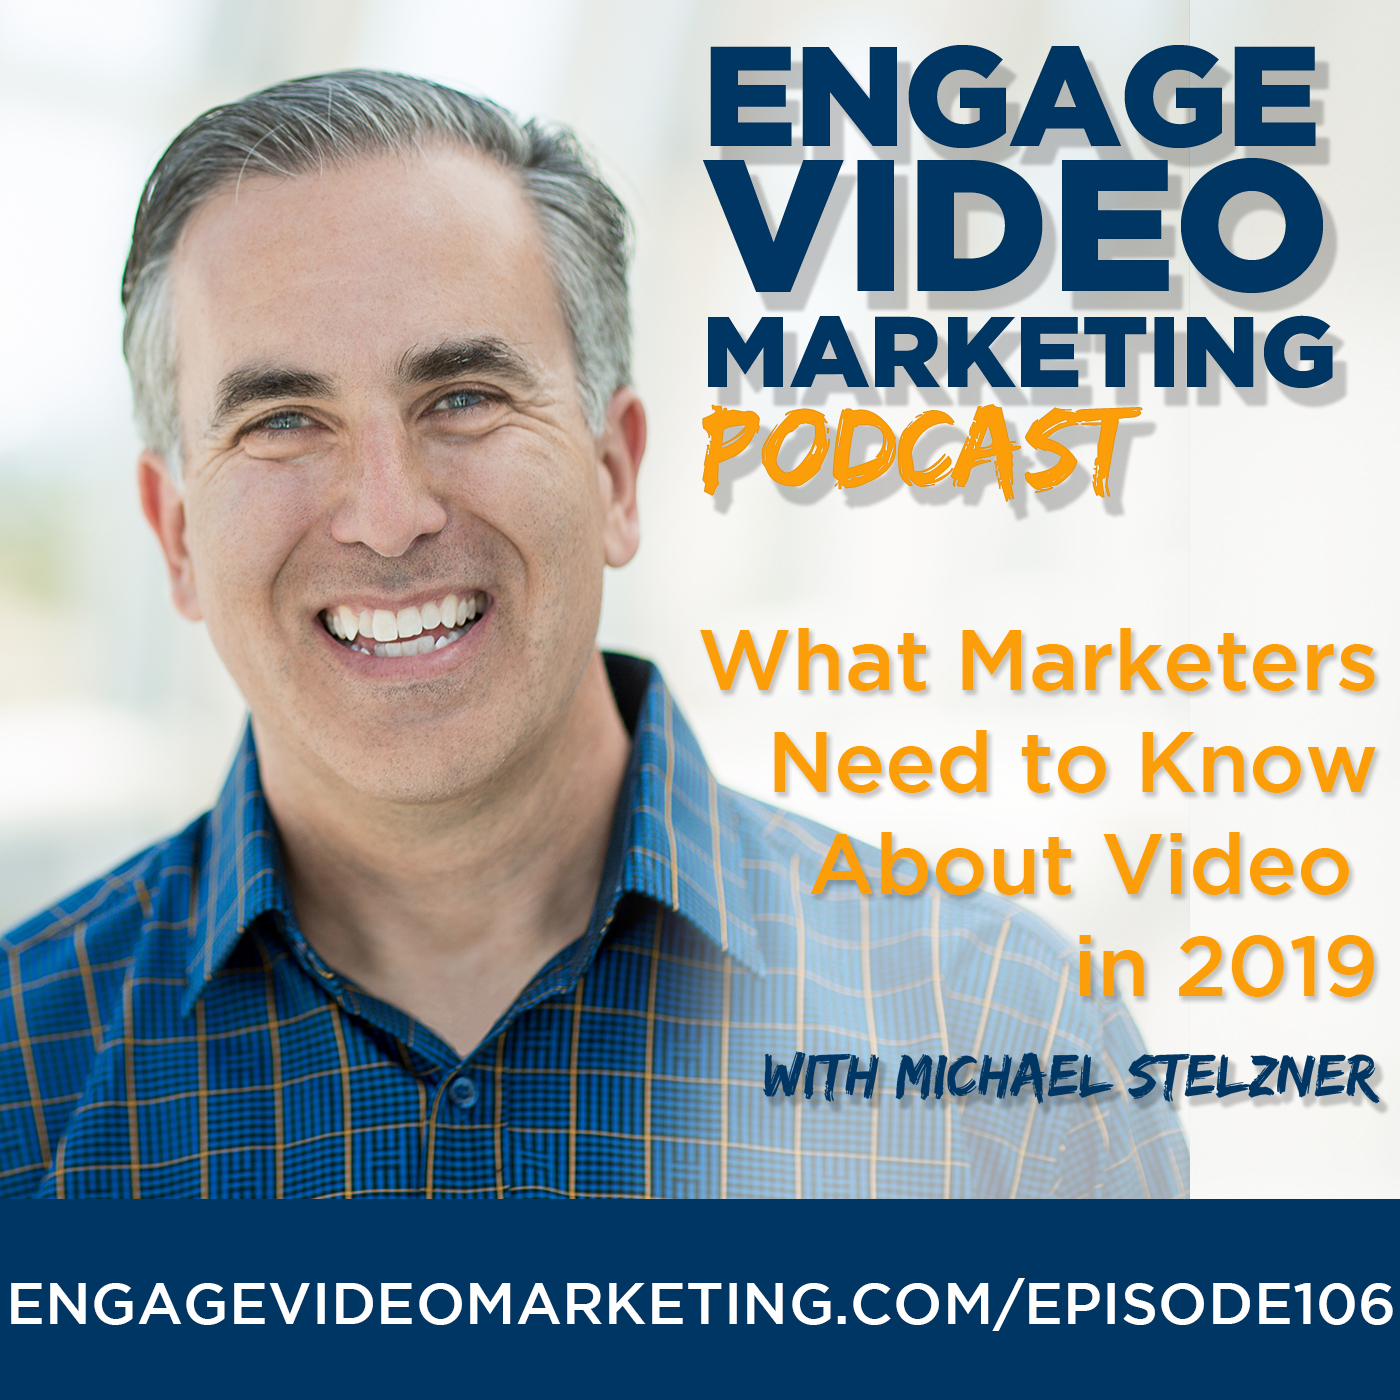 What Marketers Need to Know About Video in 2019 with Michael Stelzner